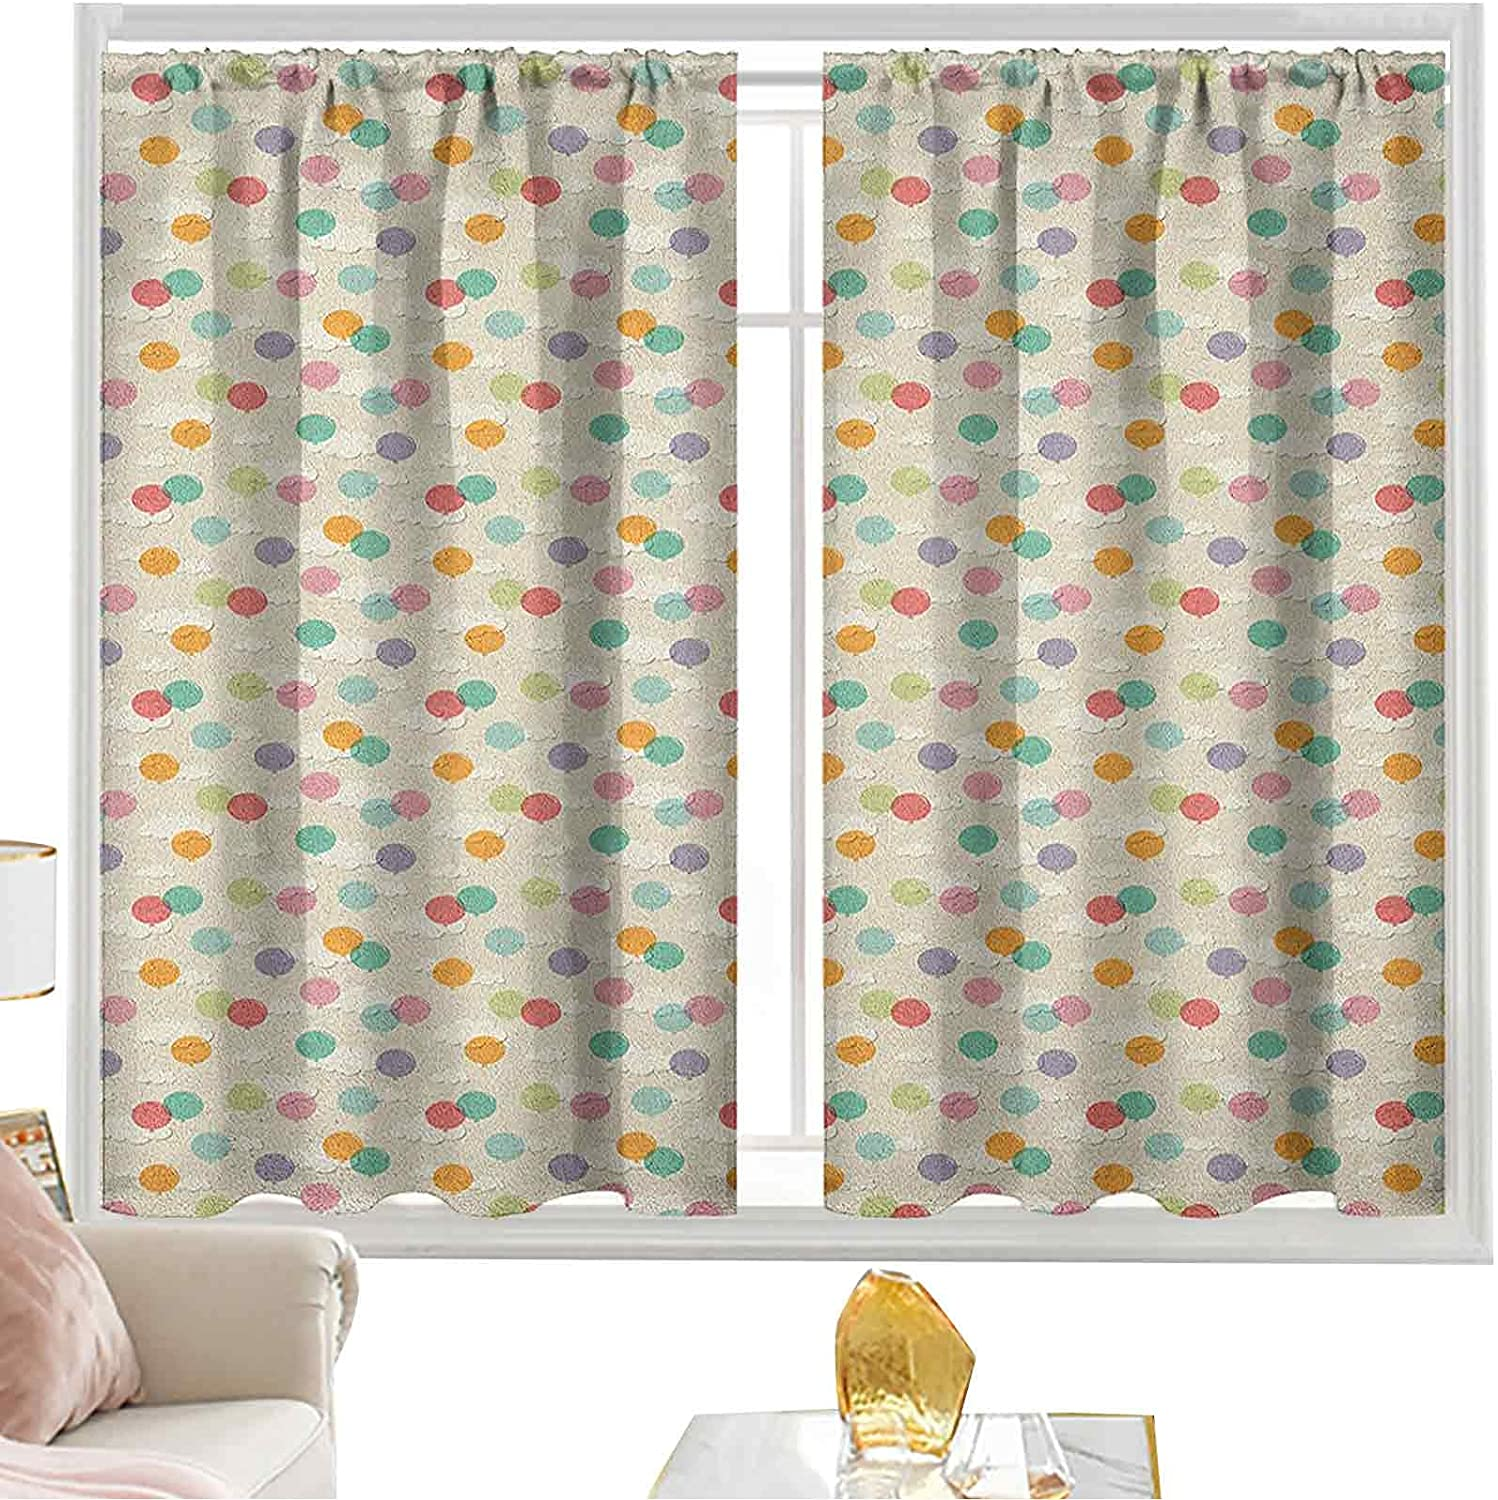 Rod Pocket Curtain Pastel Sale price Colored The Super sale Fluf Balloons Over Flying